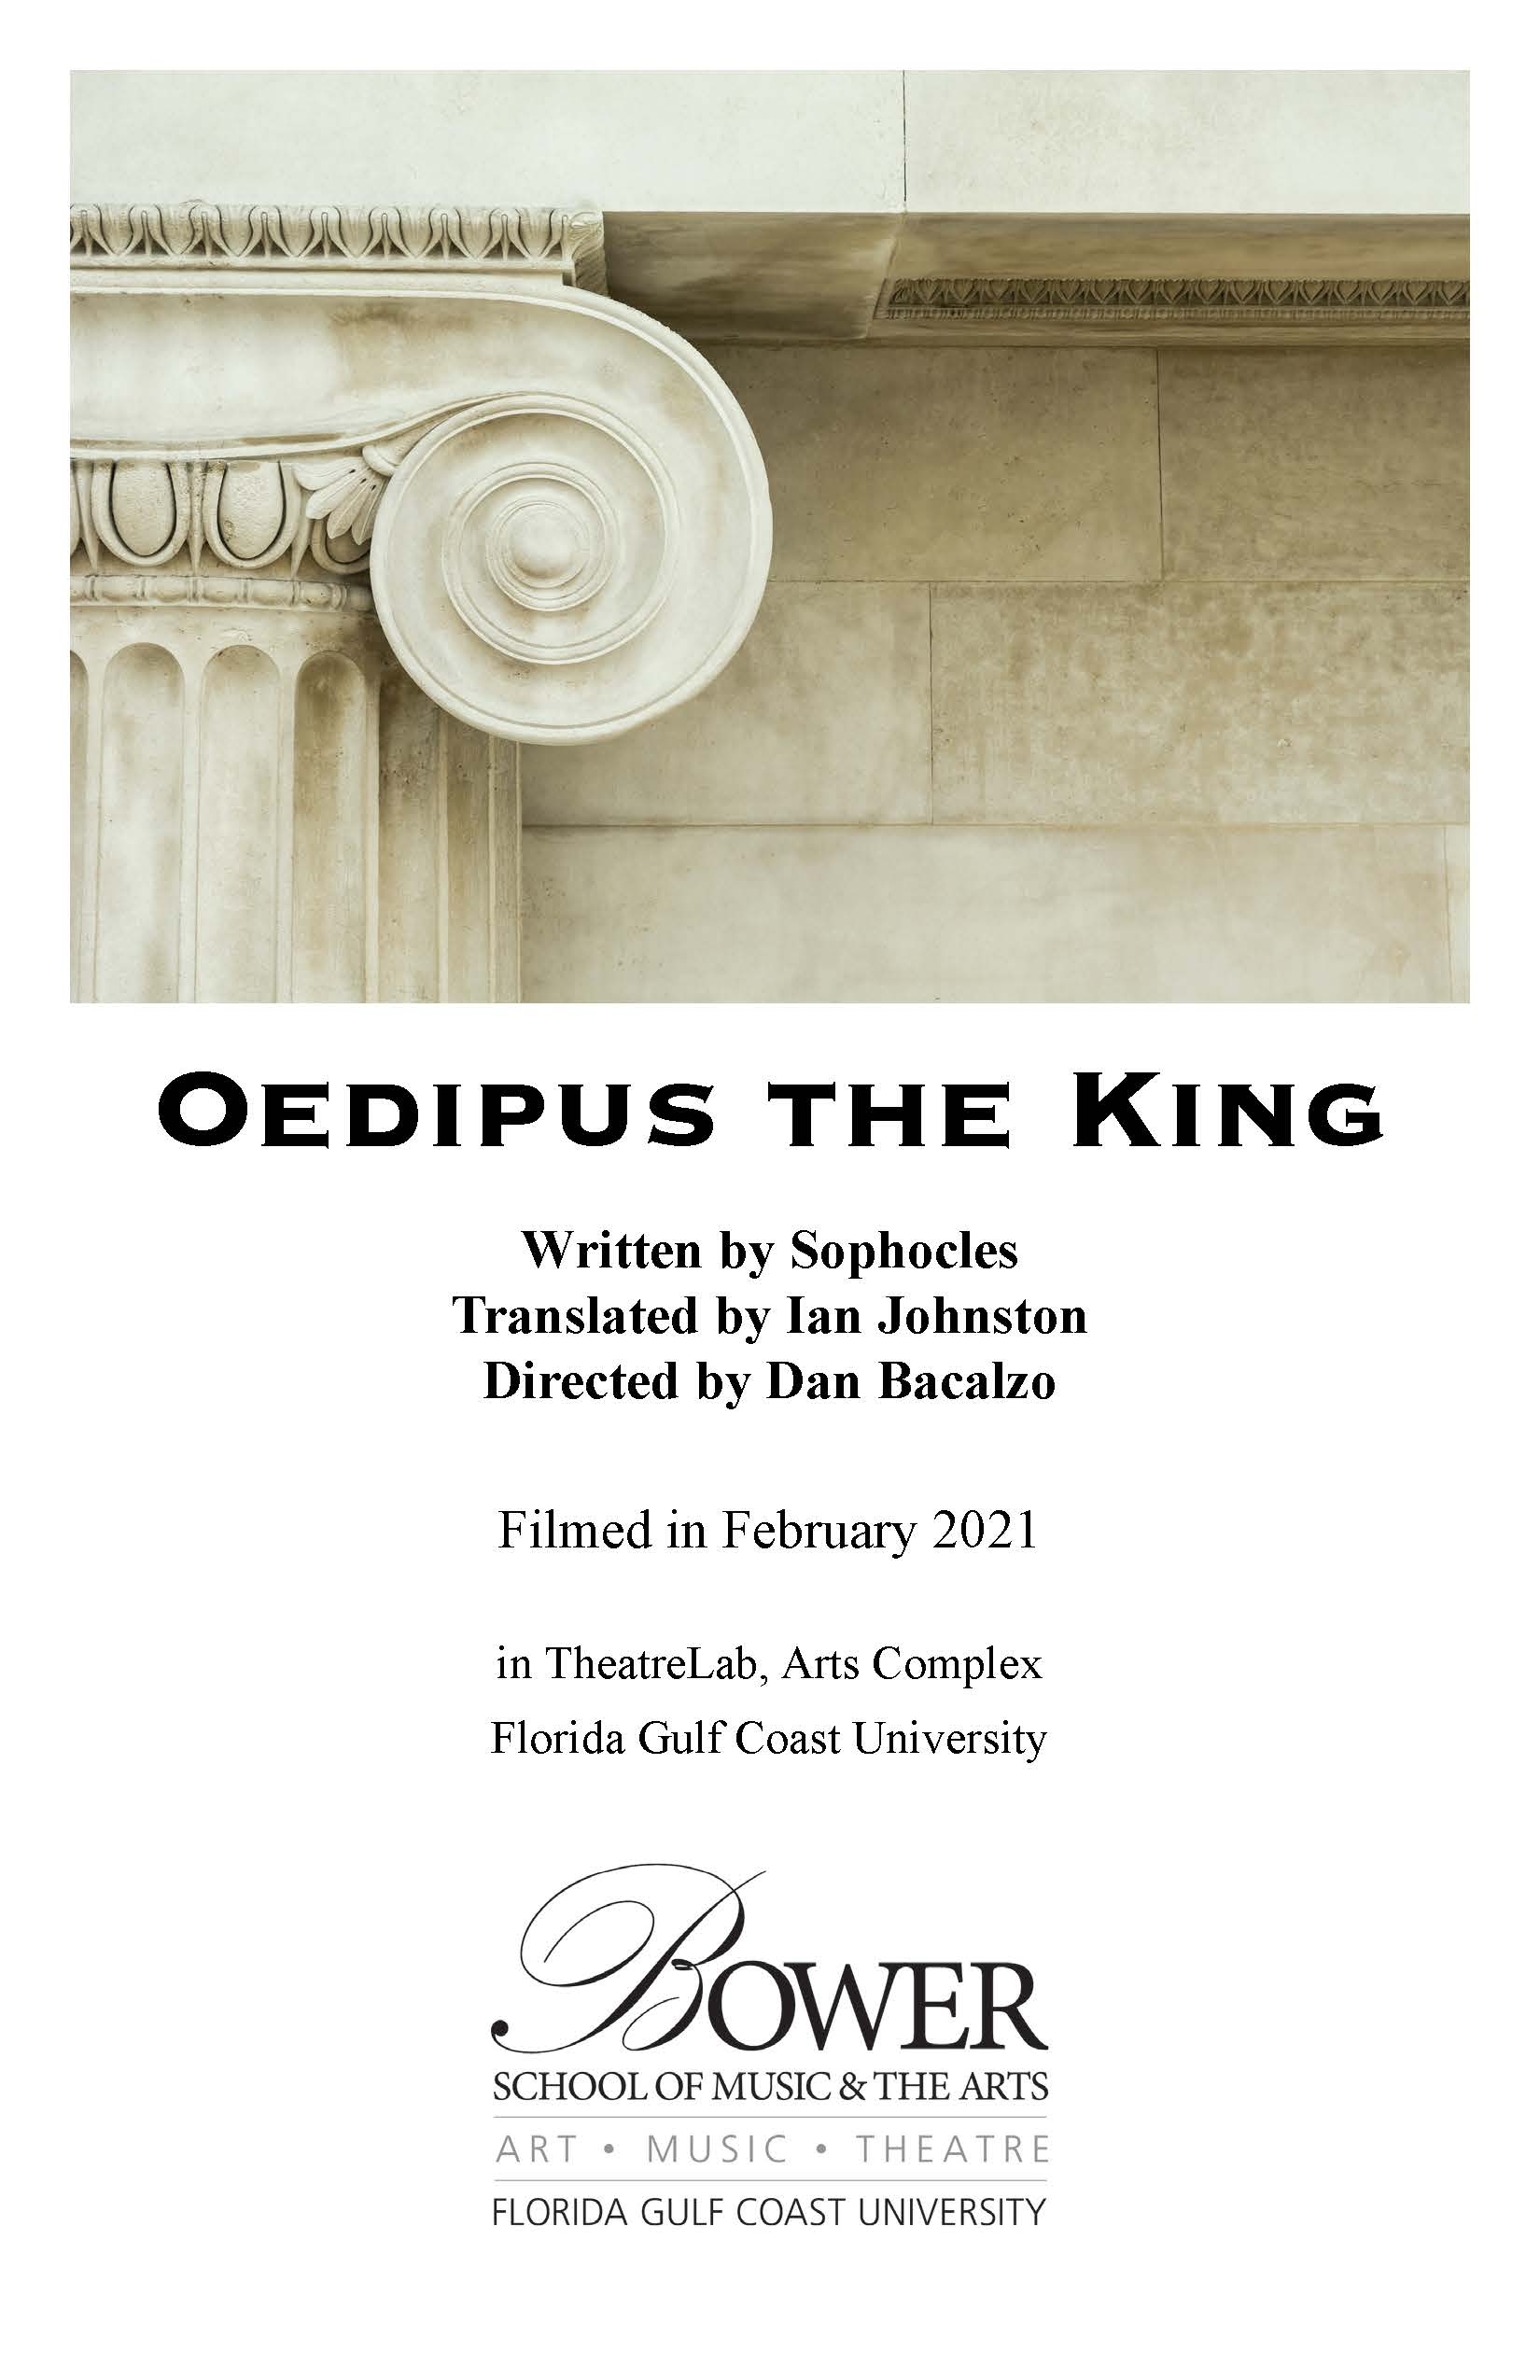 Oedipus the King program cover